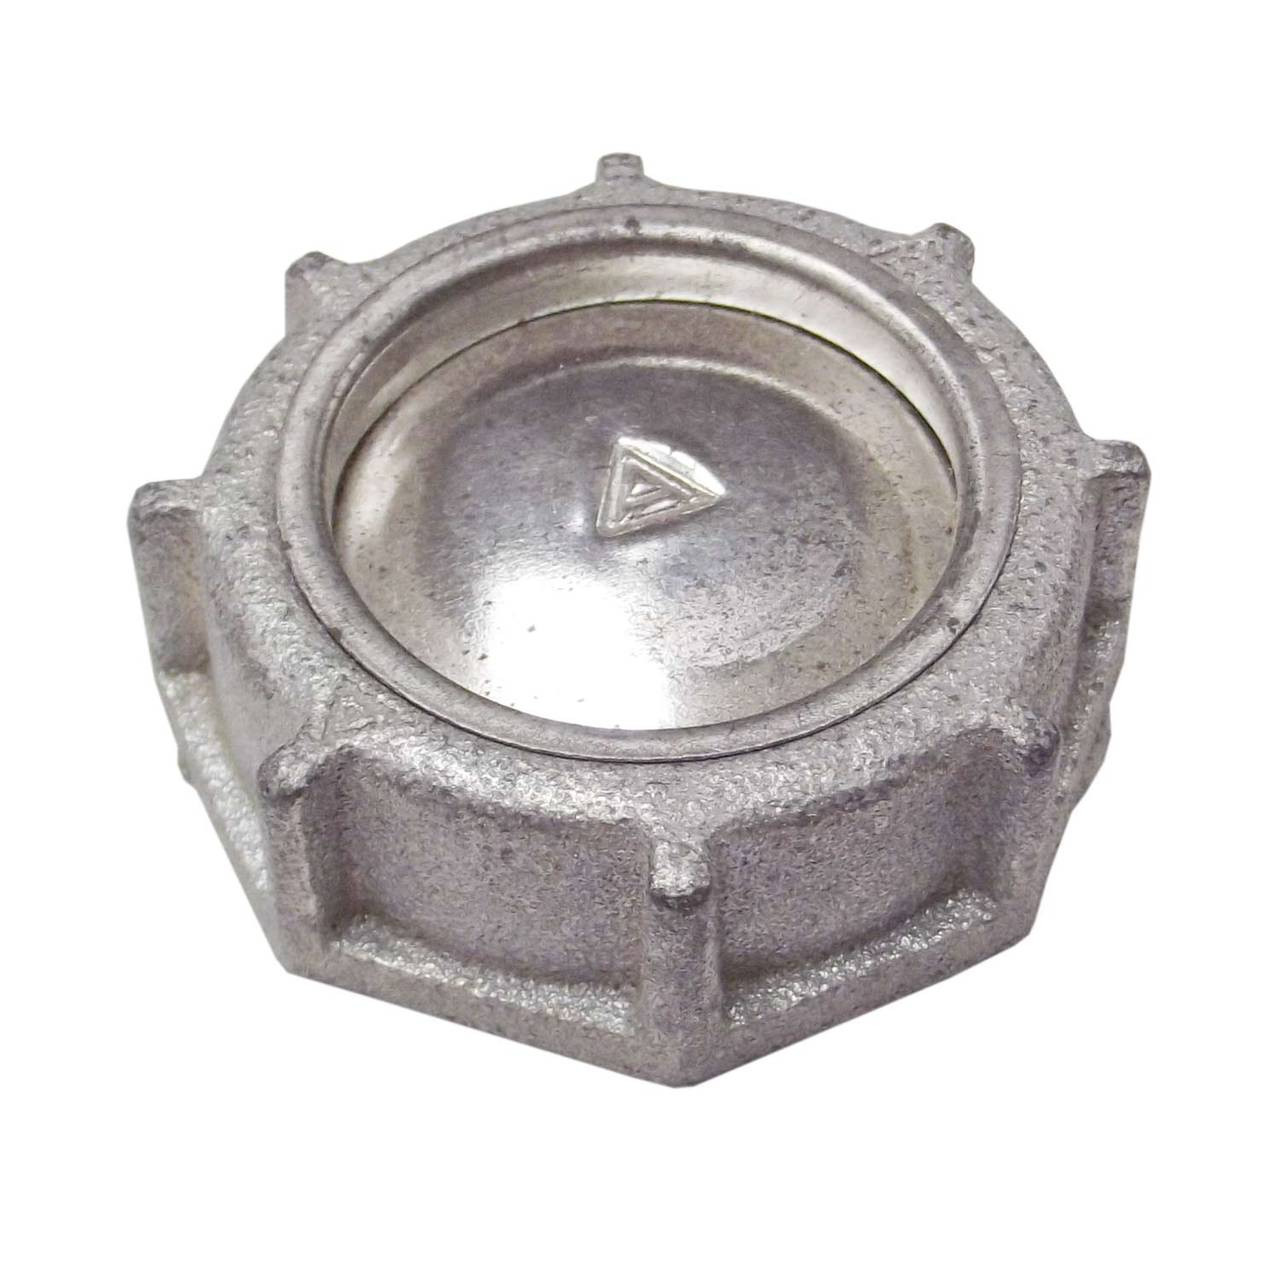 Appleton buc quot threaded capped malleable iron bushing